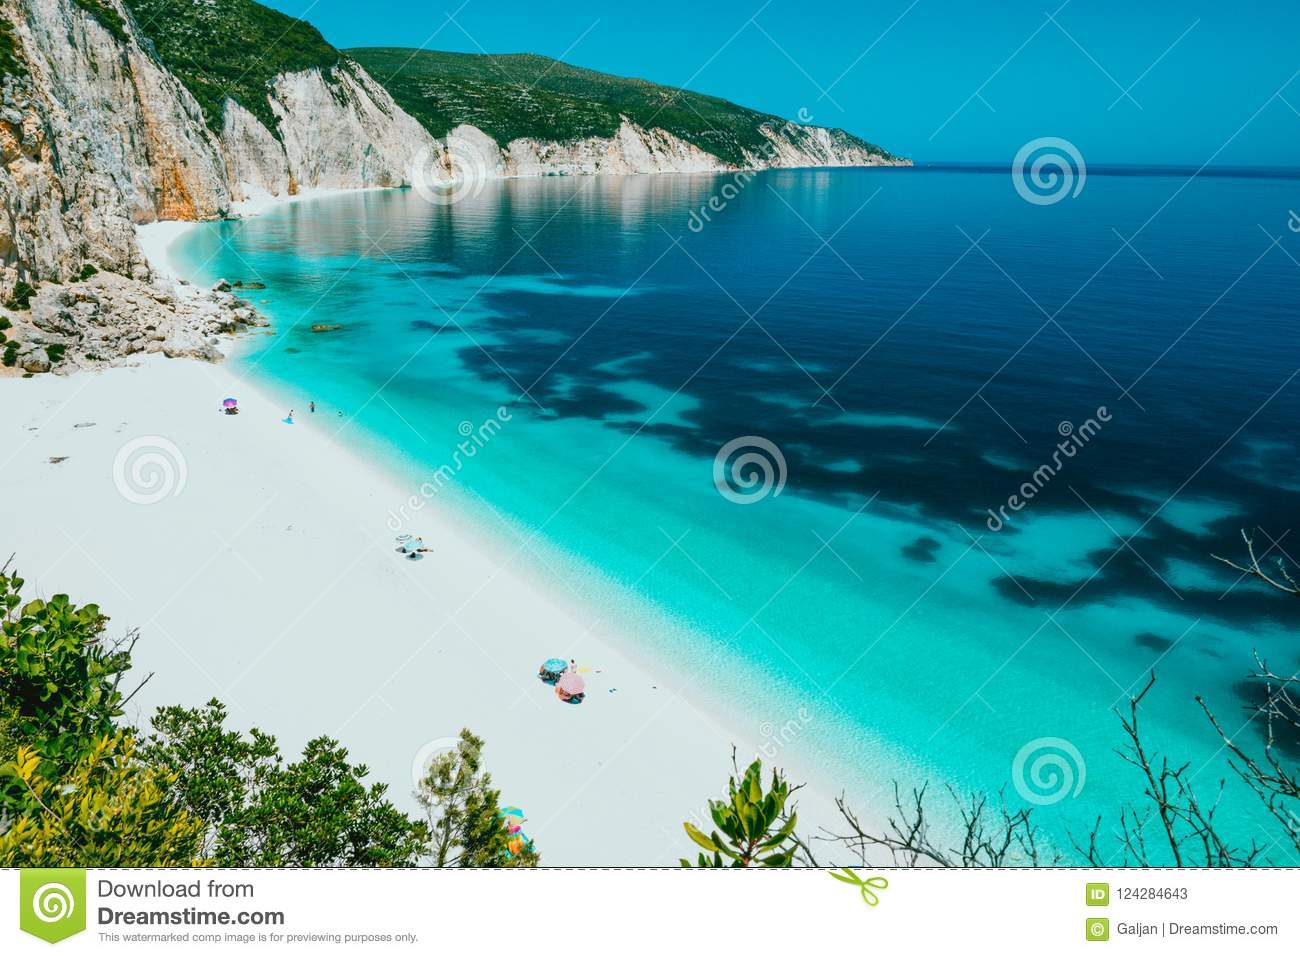 Sunny Fteri beach lagoon with rocky coastline, Kefalonia, Greece. Tourists under umbrella chill relax near clear blue